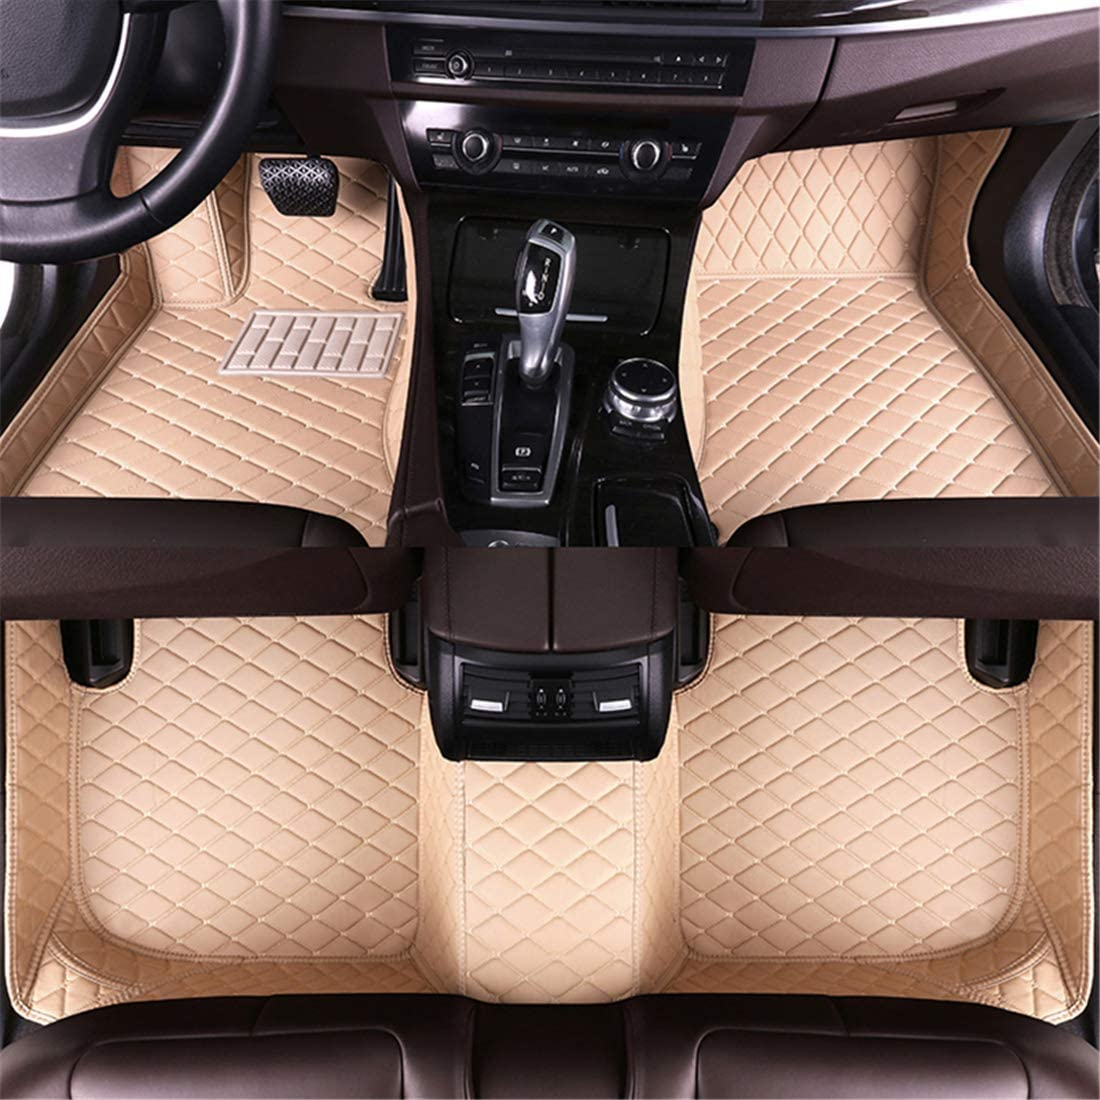 Muchkey CustomCarFloorMatsfor Cadillac SRX Ⅱ 2010-2016 Full Coverage All Weather Protection Waterproof Leather Liner Set Beige